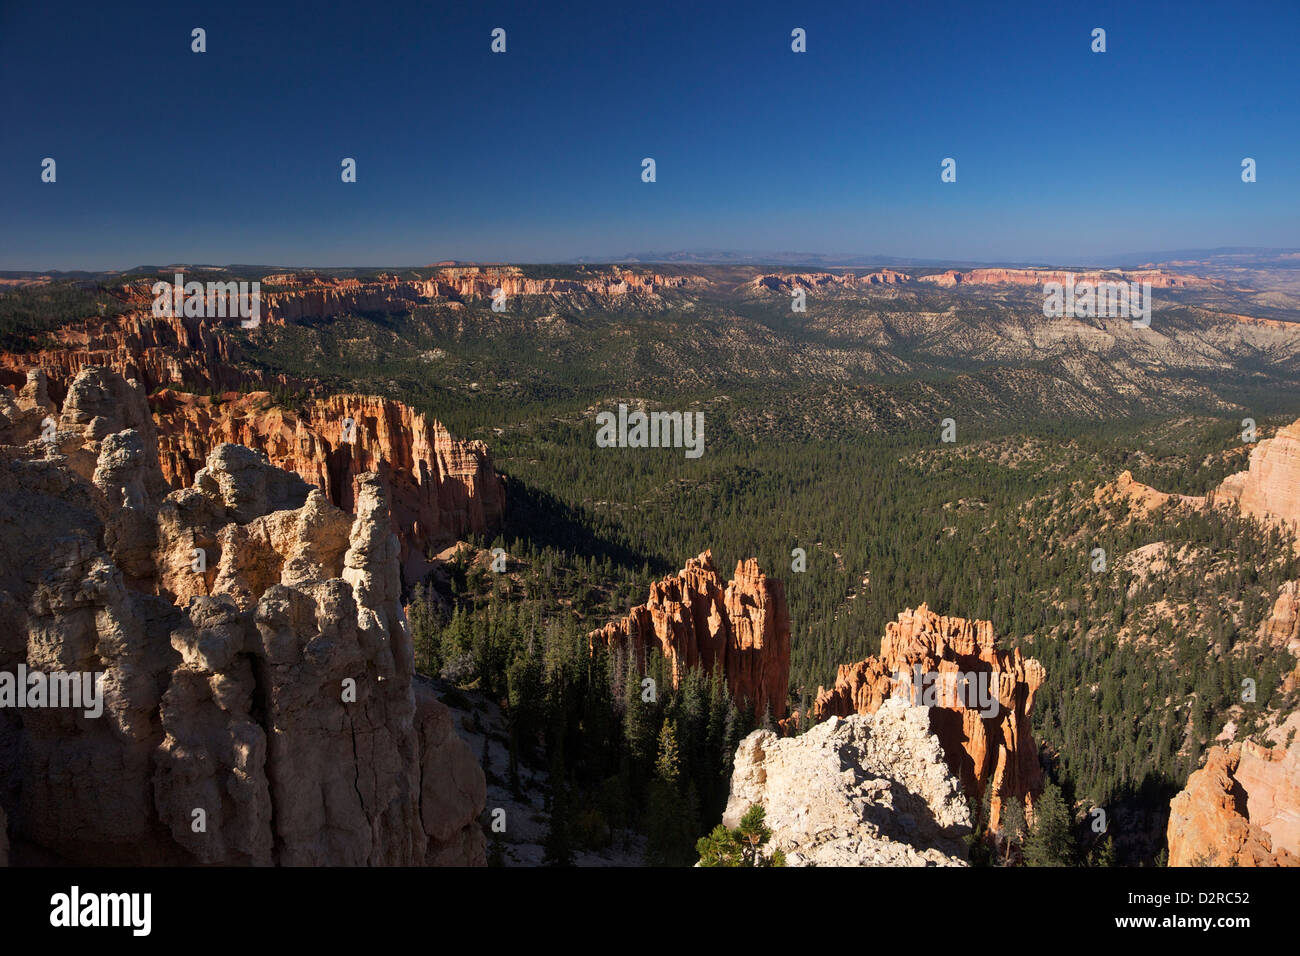 View early morning from Ponderosa Point, Bryce Canyon National Park, Utah, United States of America, North America - Stock Image